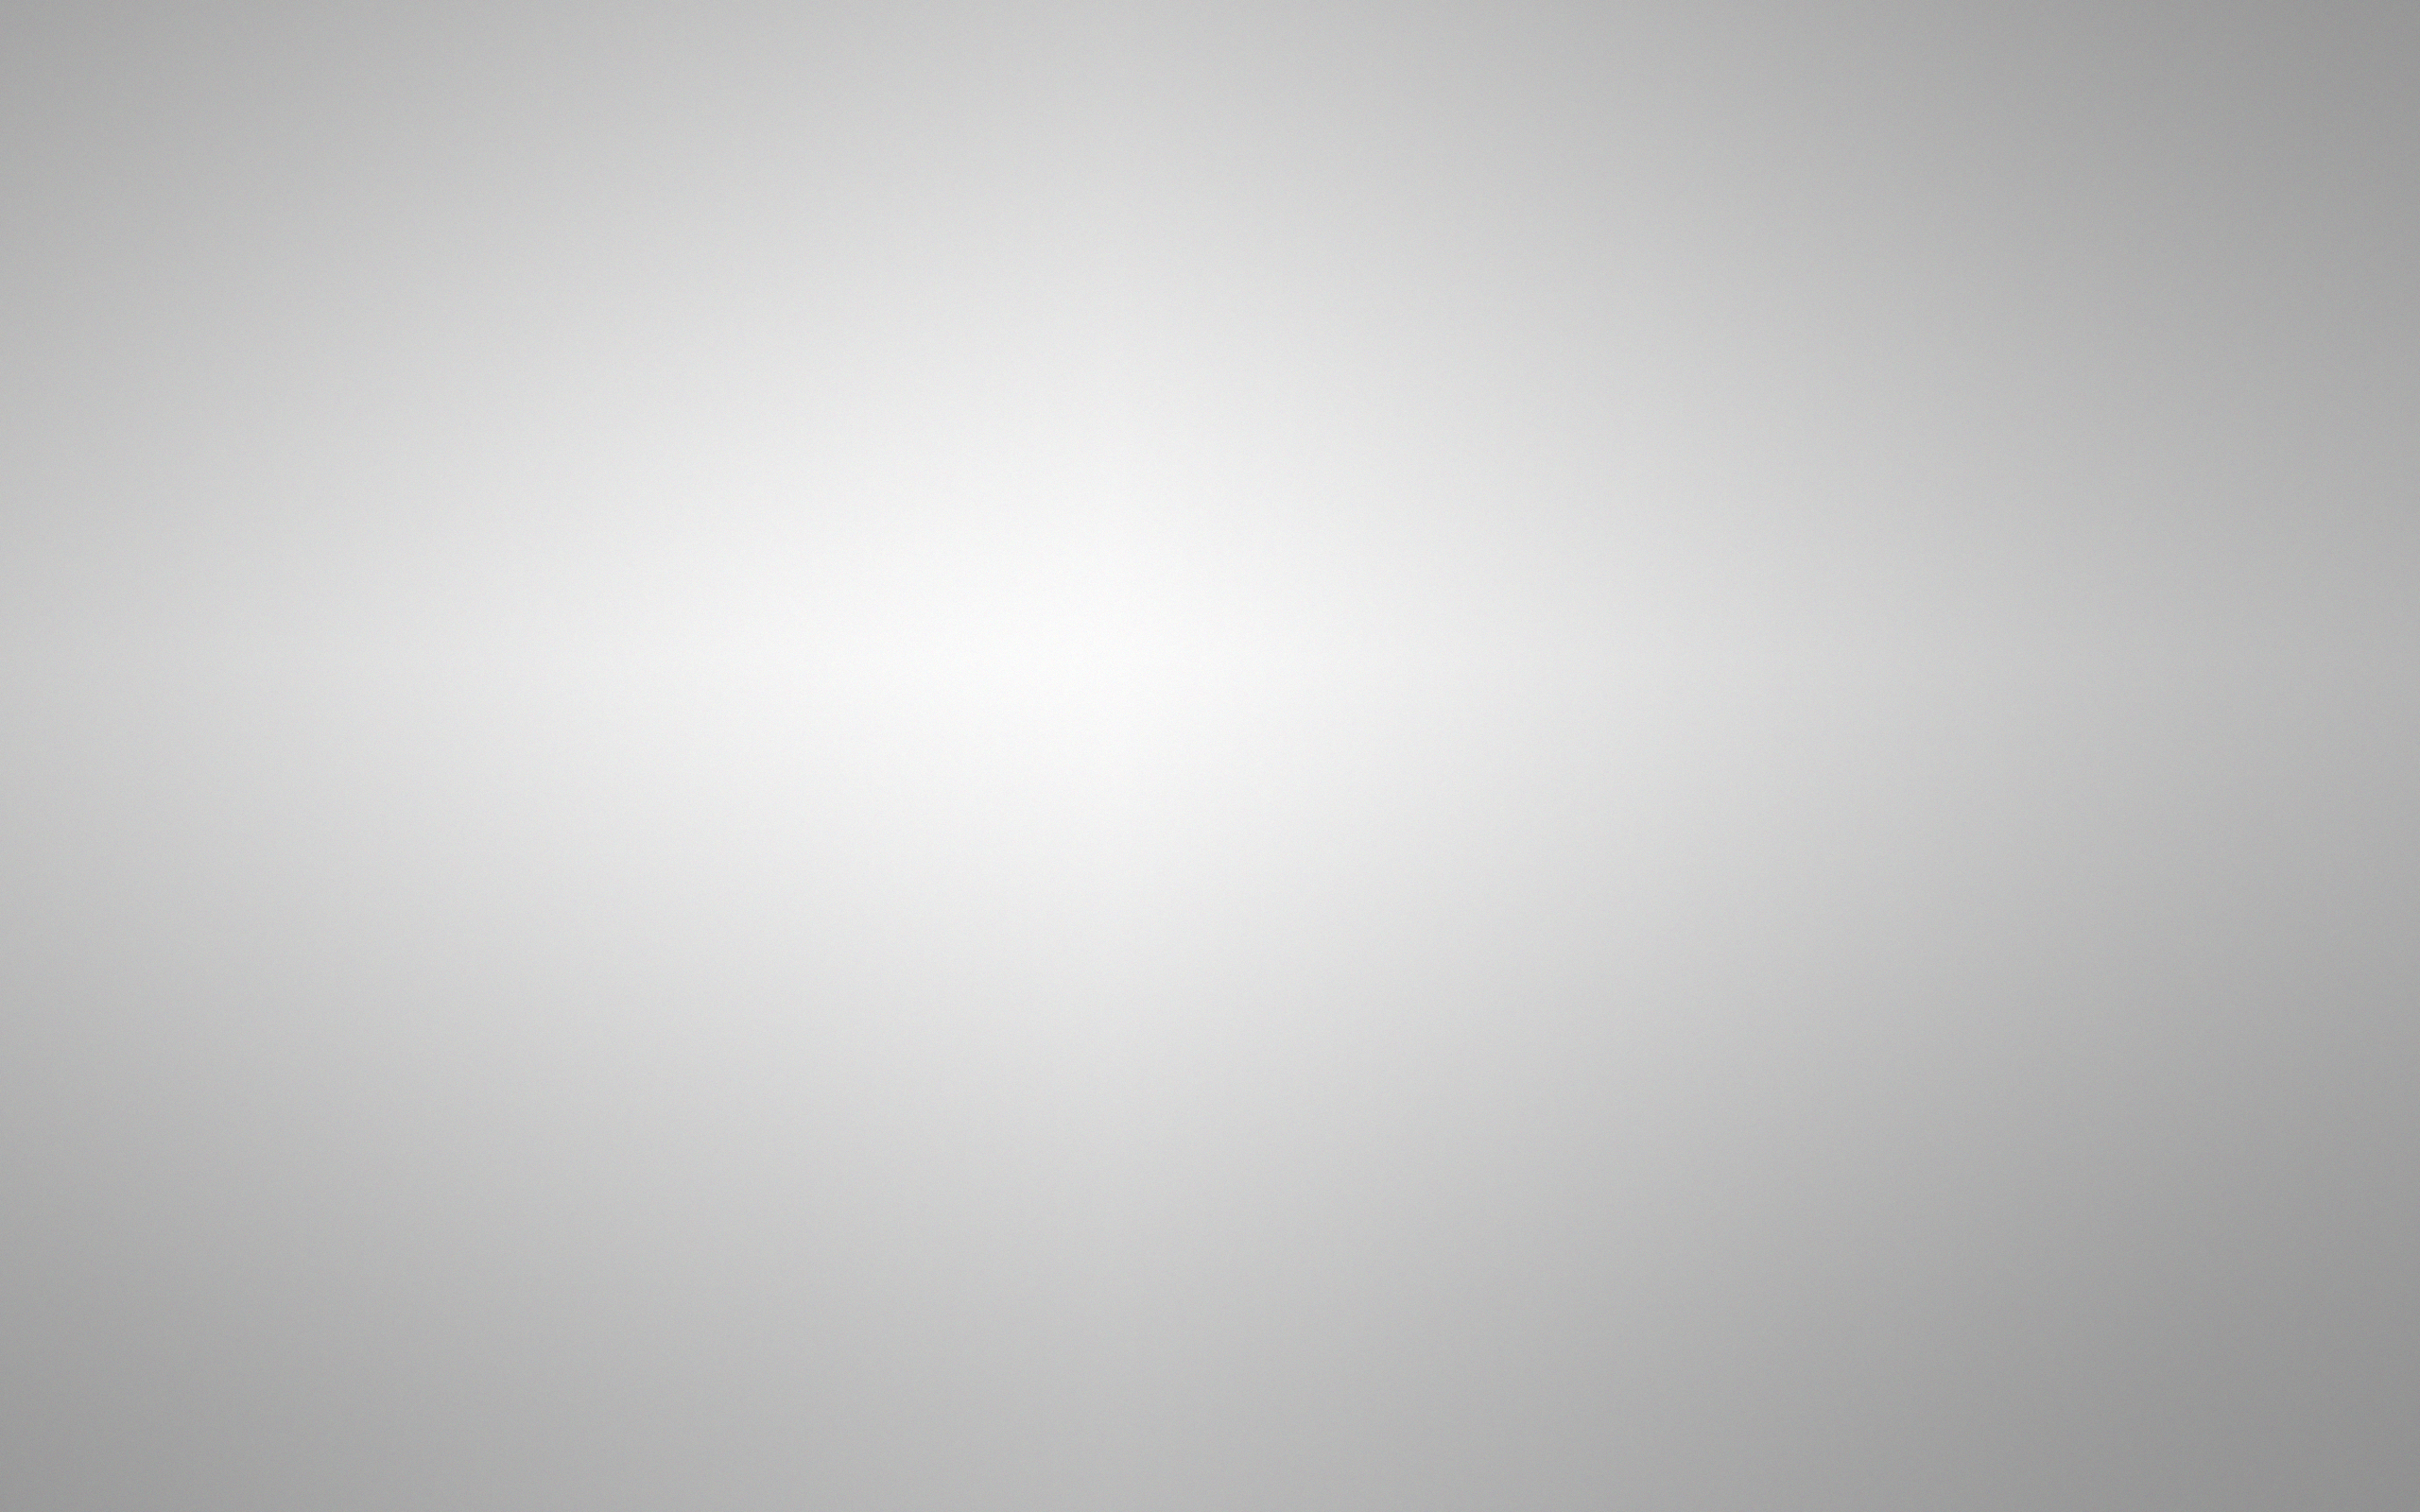 ... Clean White Bg 2560 X 1600 by MarkWester